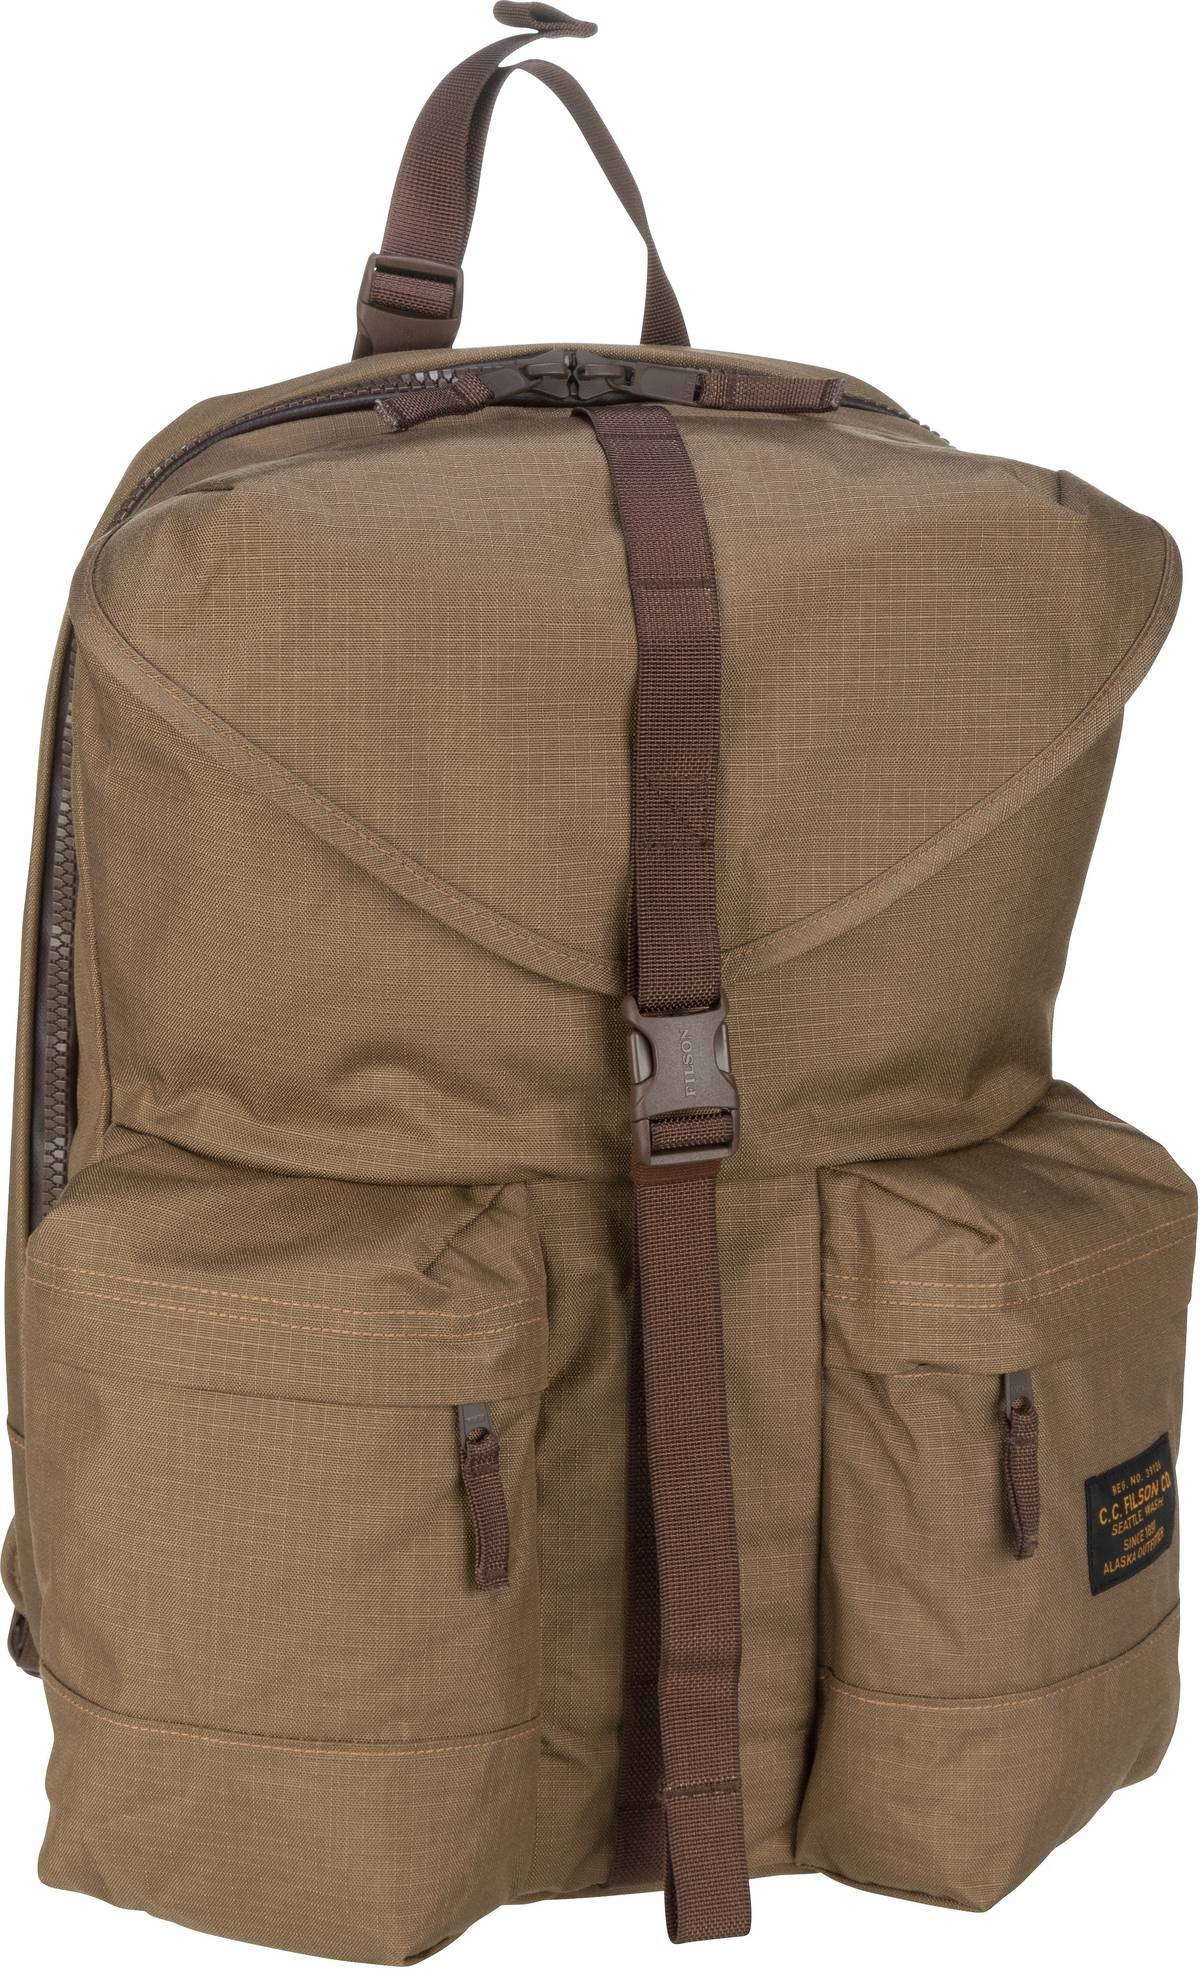 filson -  Laptoprucksack Ripstop Nylon Backpack Field Tan (35 Liter)